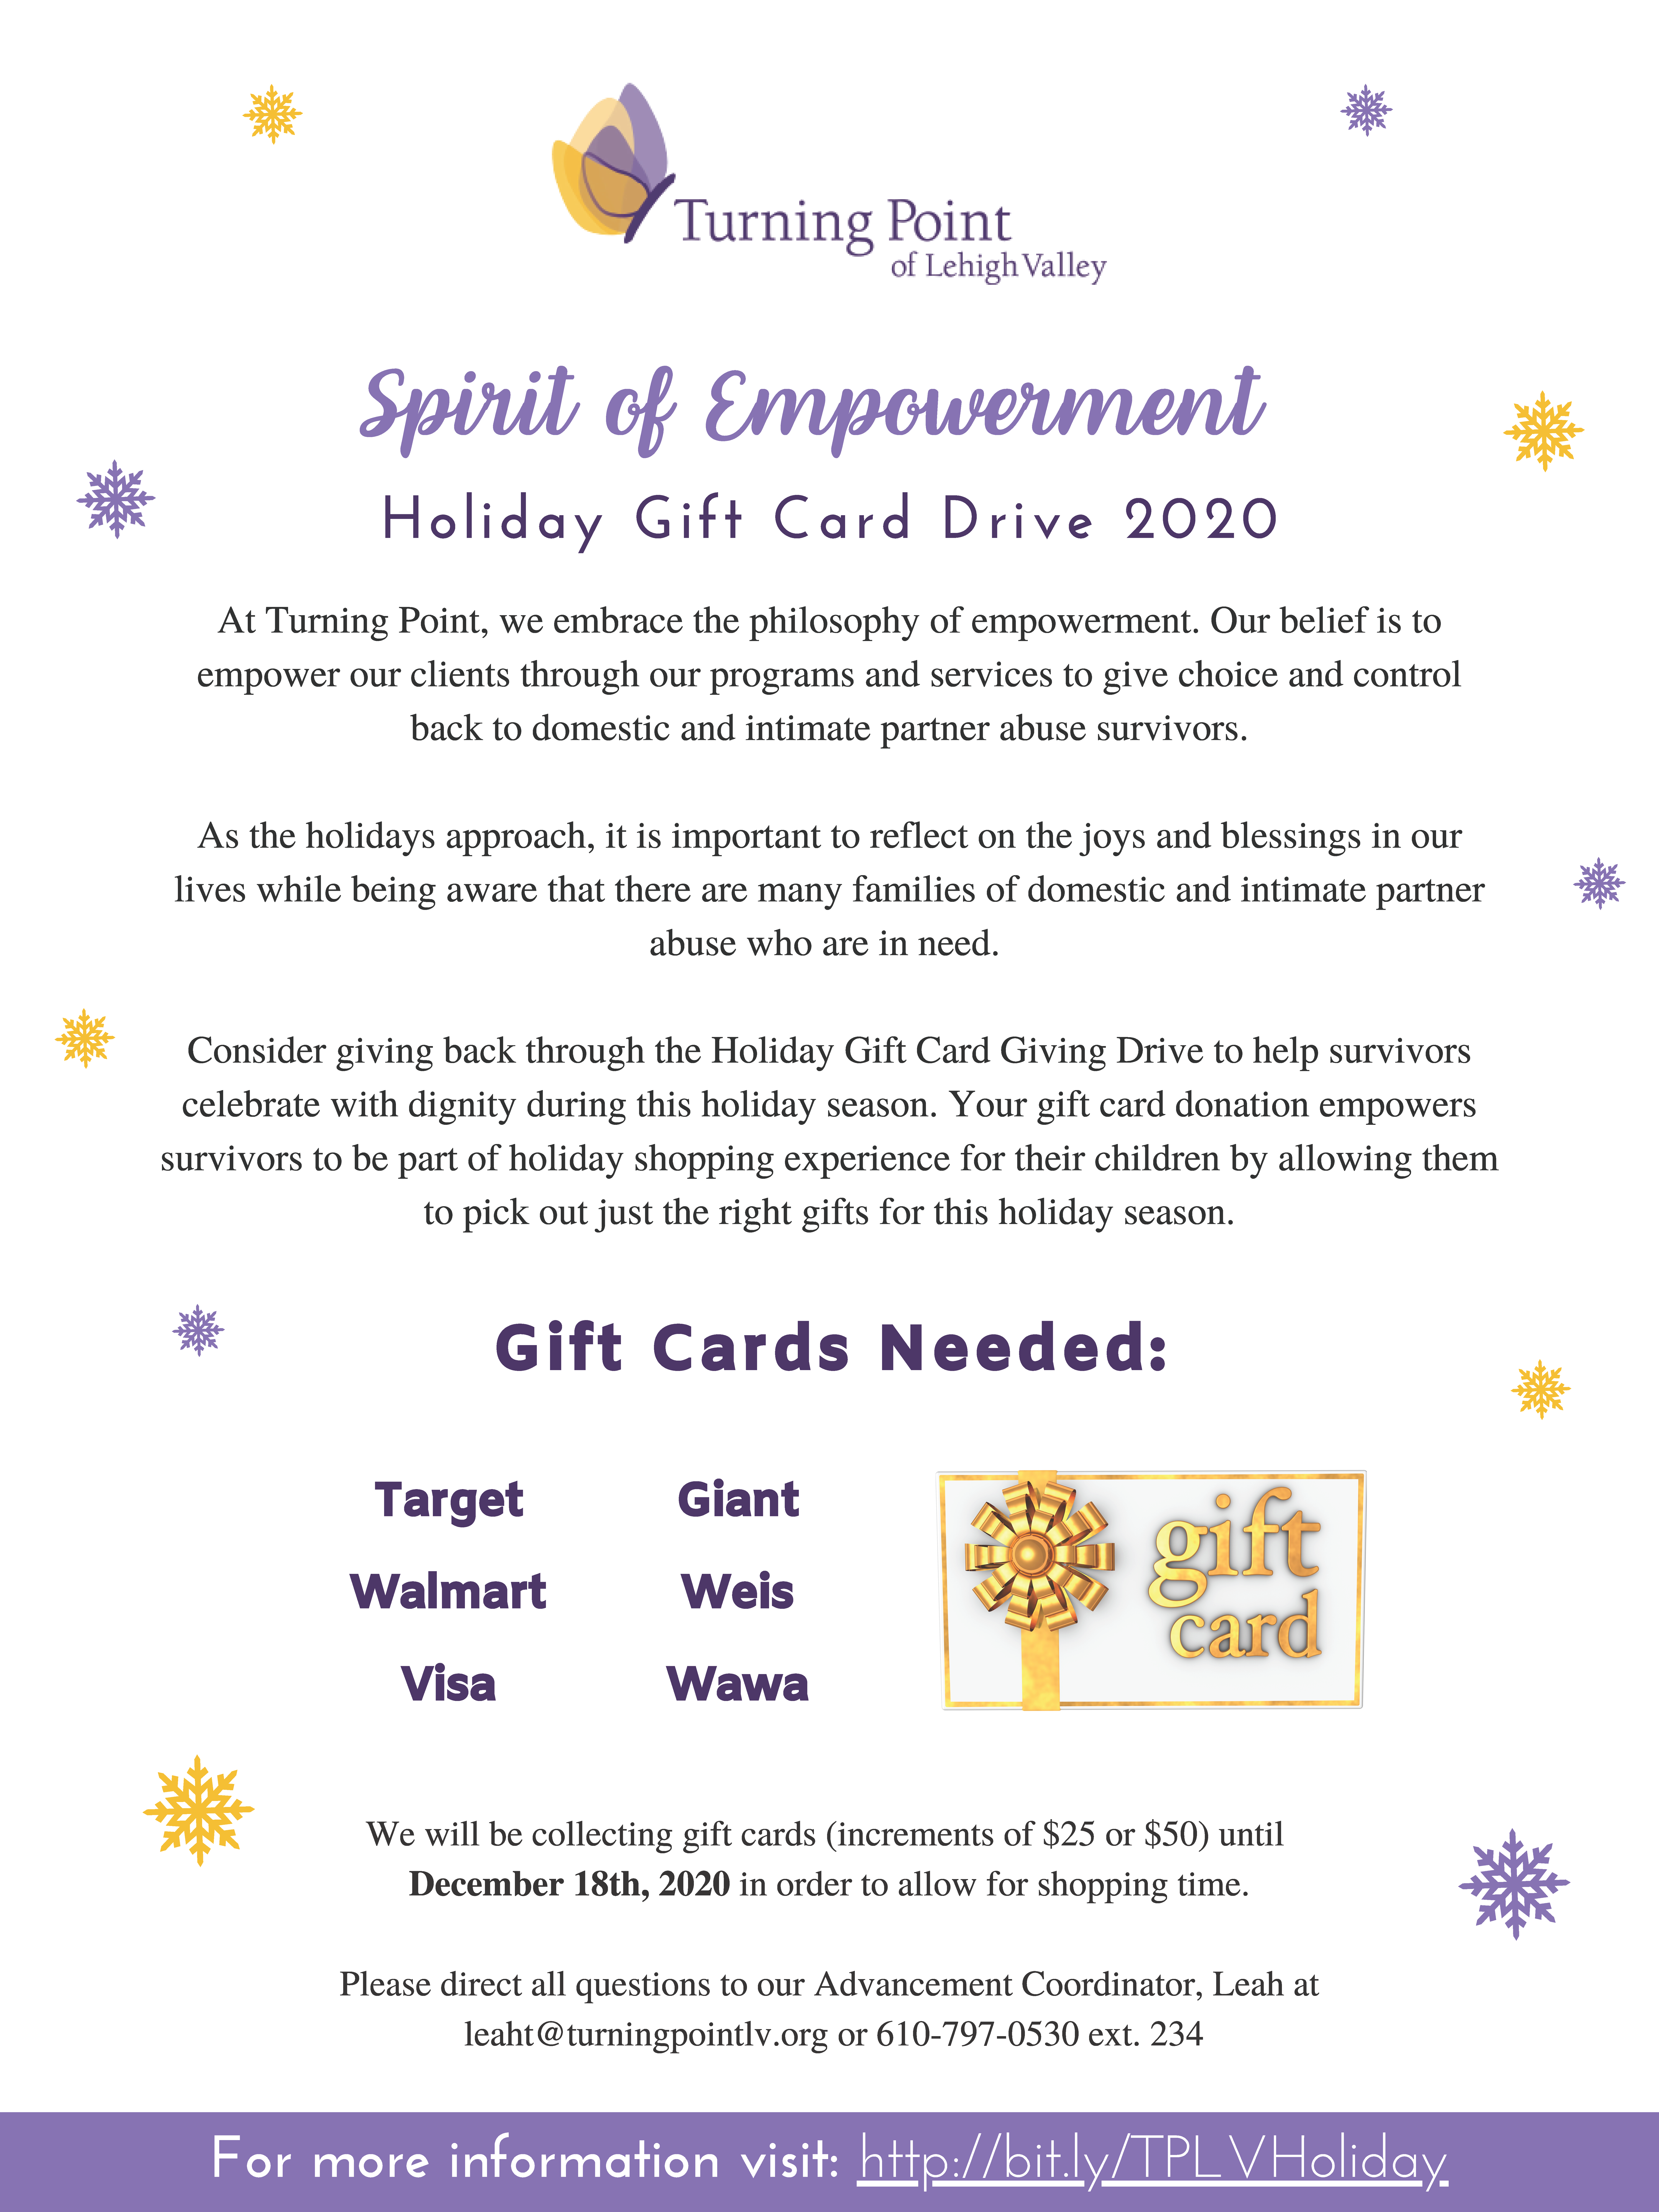 TPLV Holiday Gift Card Drive 2020